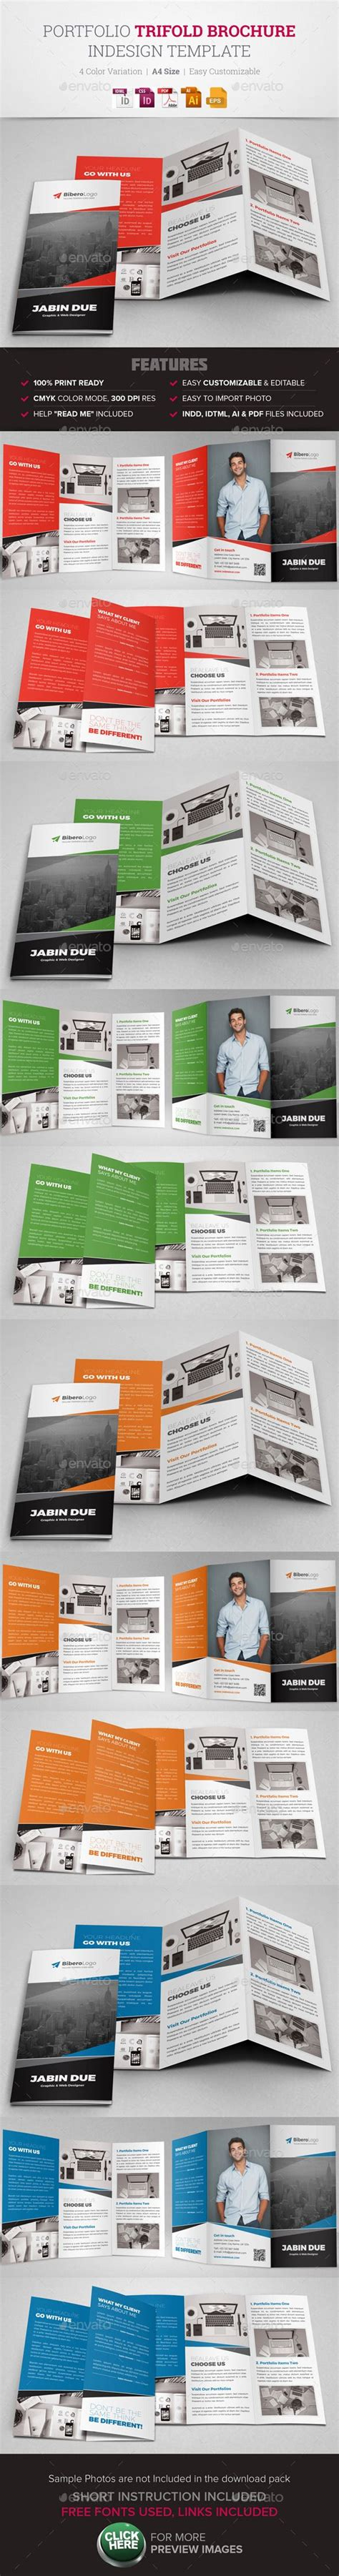 trifold brochure indesign template portfolio trifold brochure indesign template design